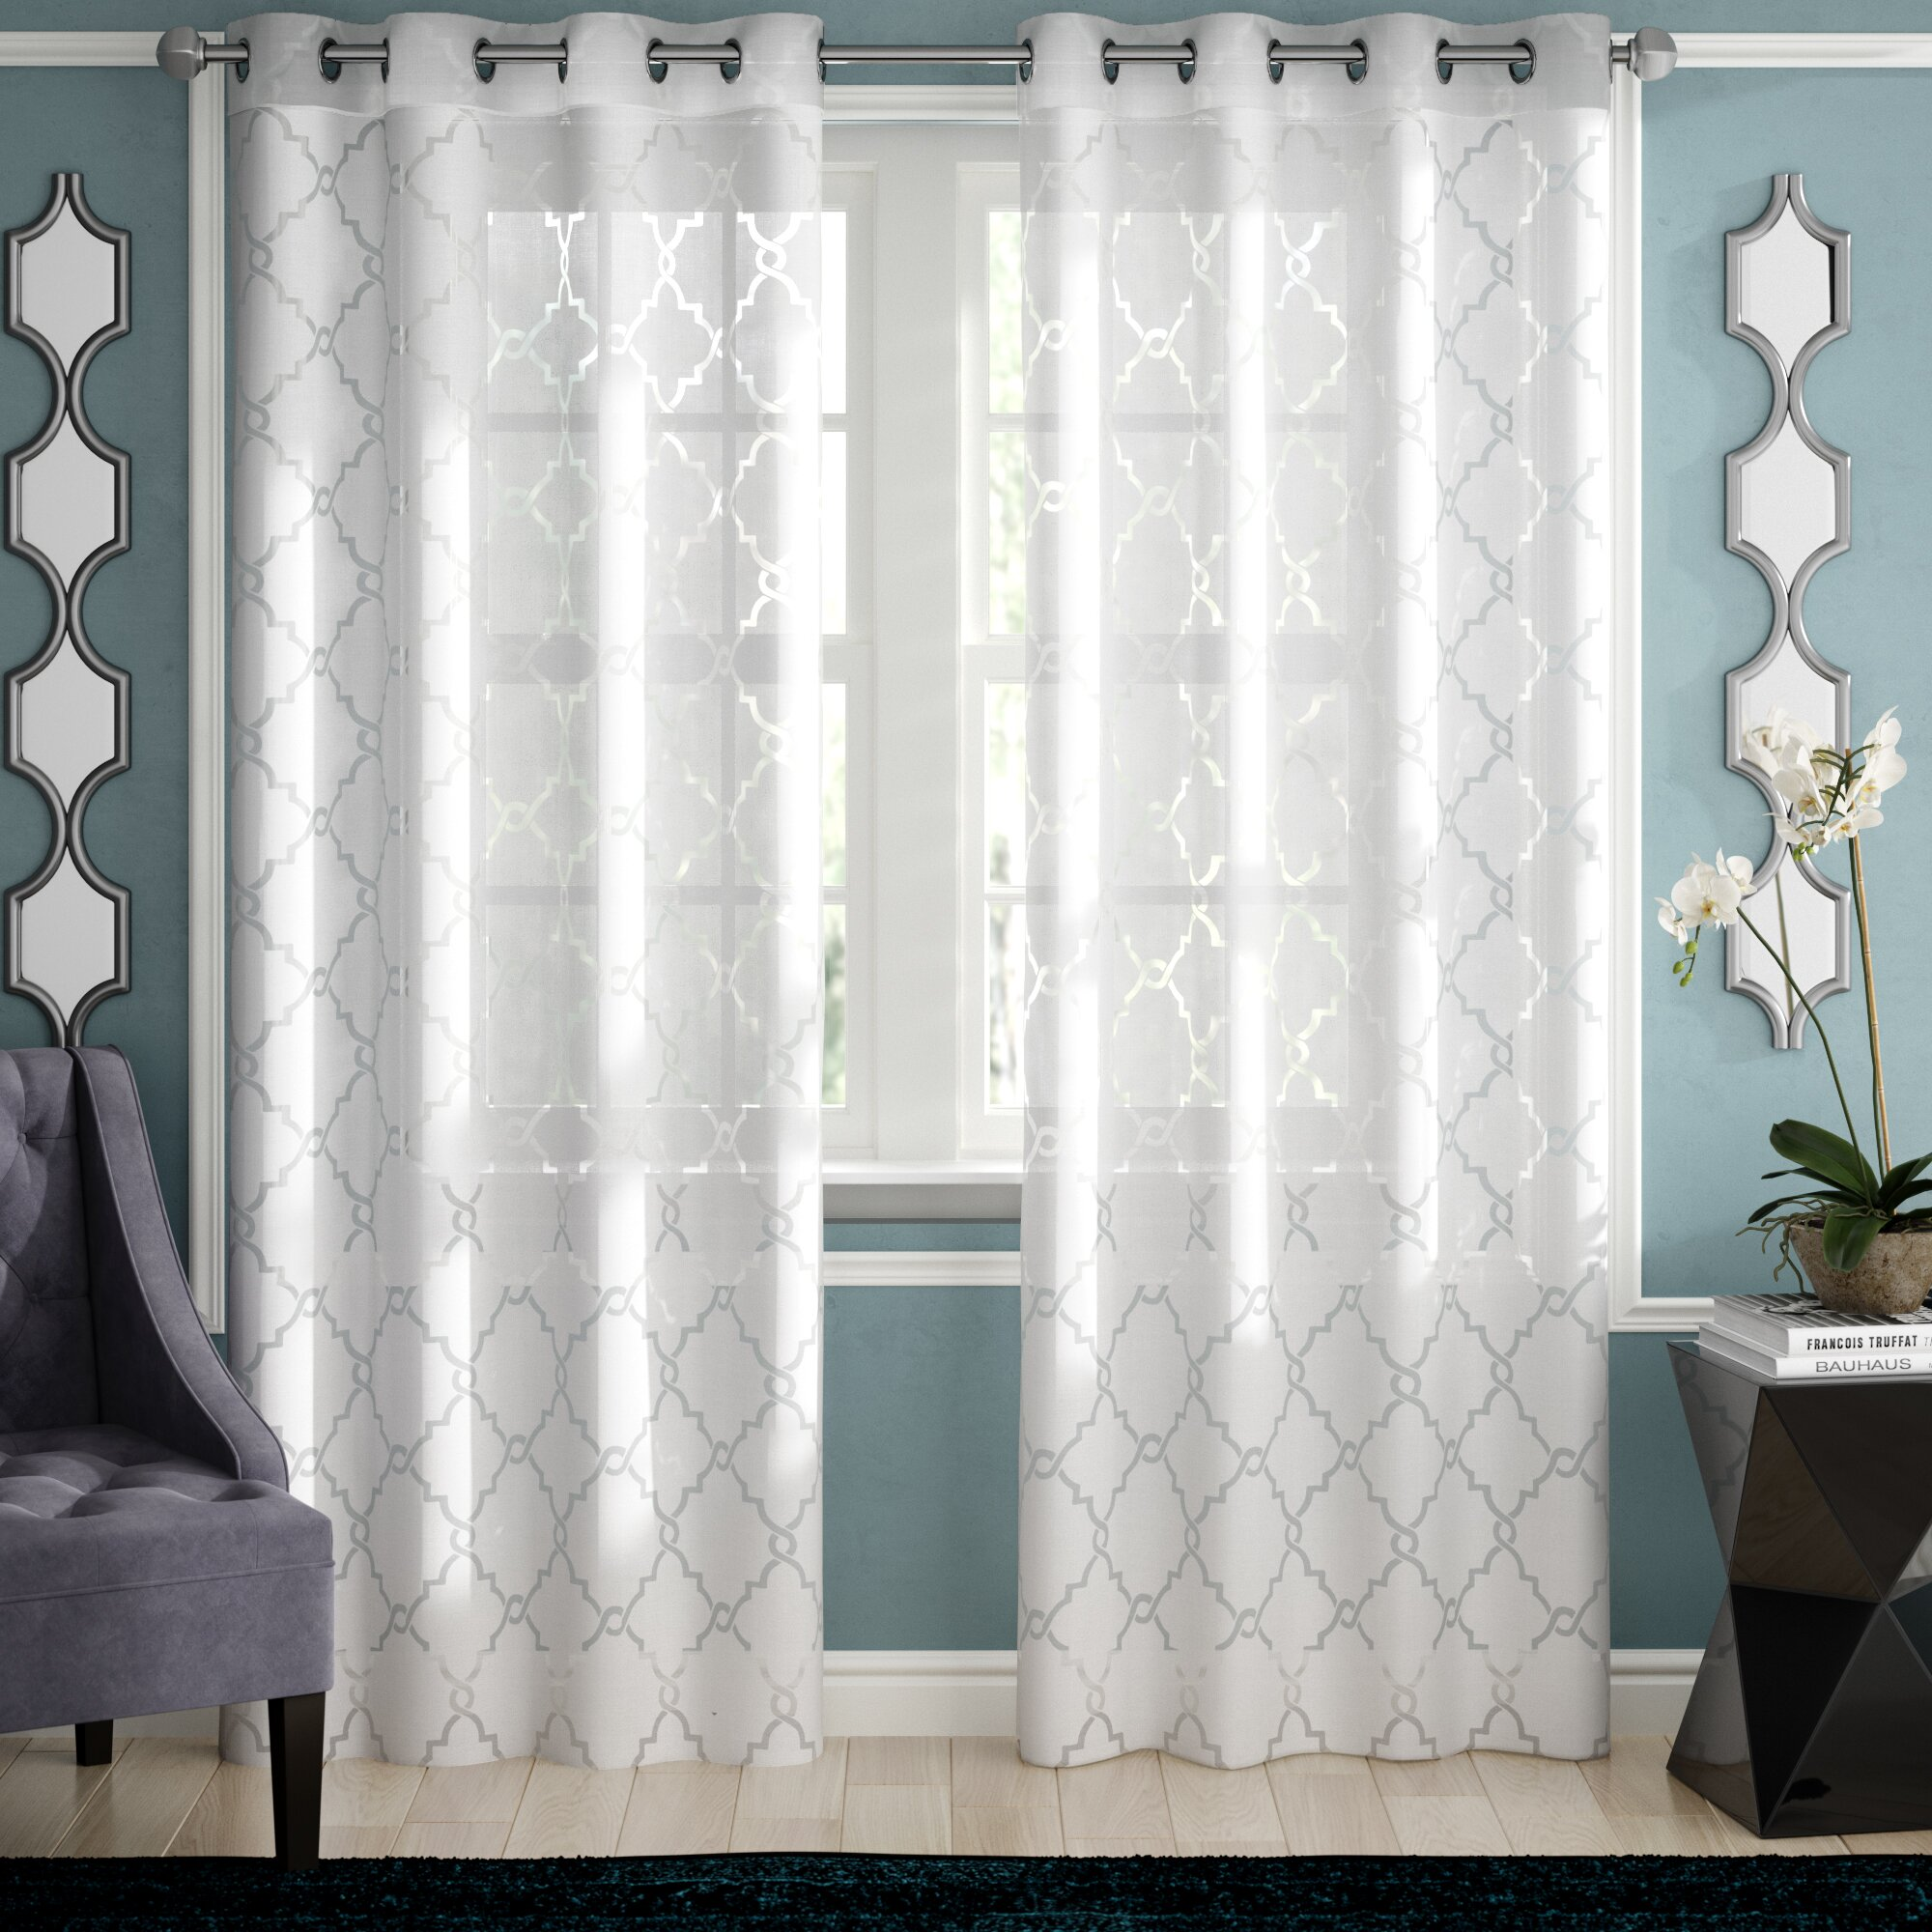 Sheer Patterned Curtains Fit In Great With Blue Wall